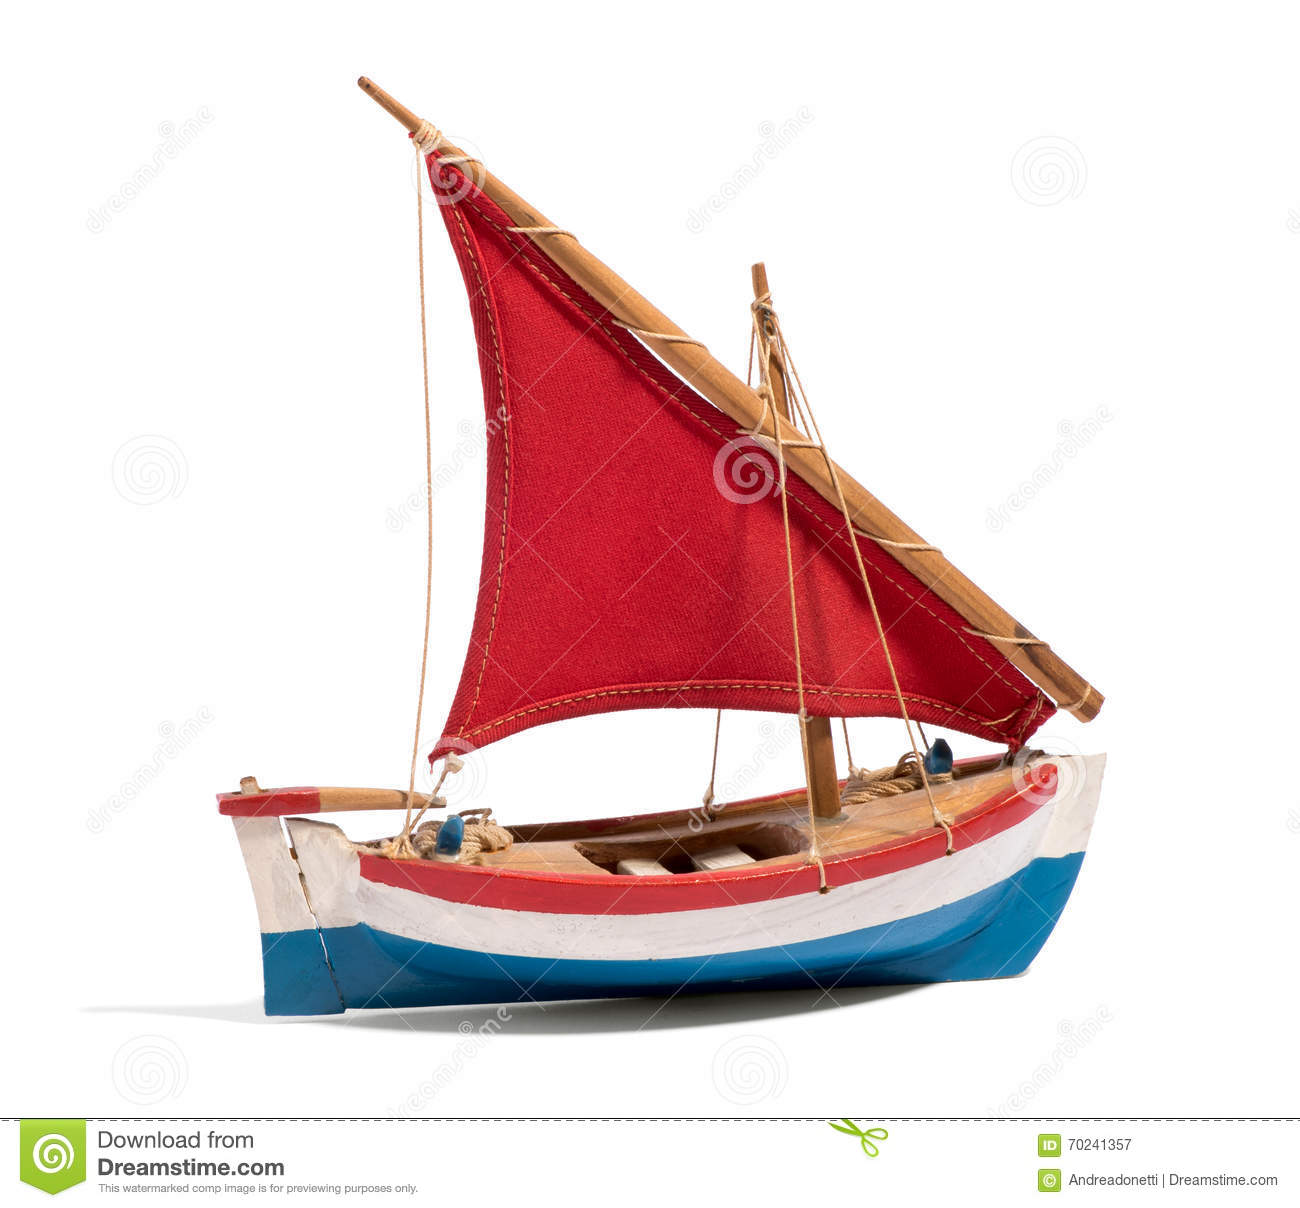 Wooden Handmade Toy Boat With A Red Sail Stock Photo - Image: 70241357